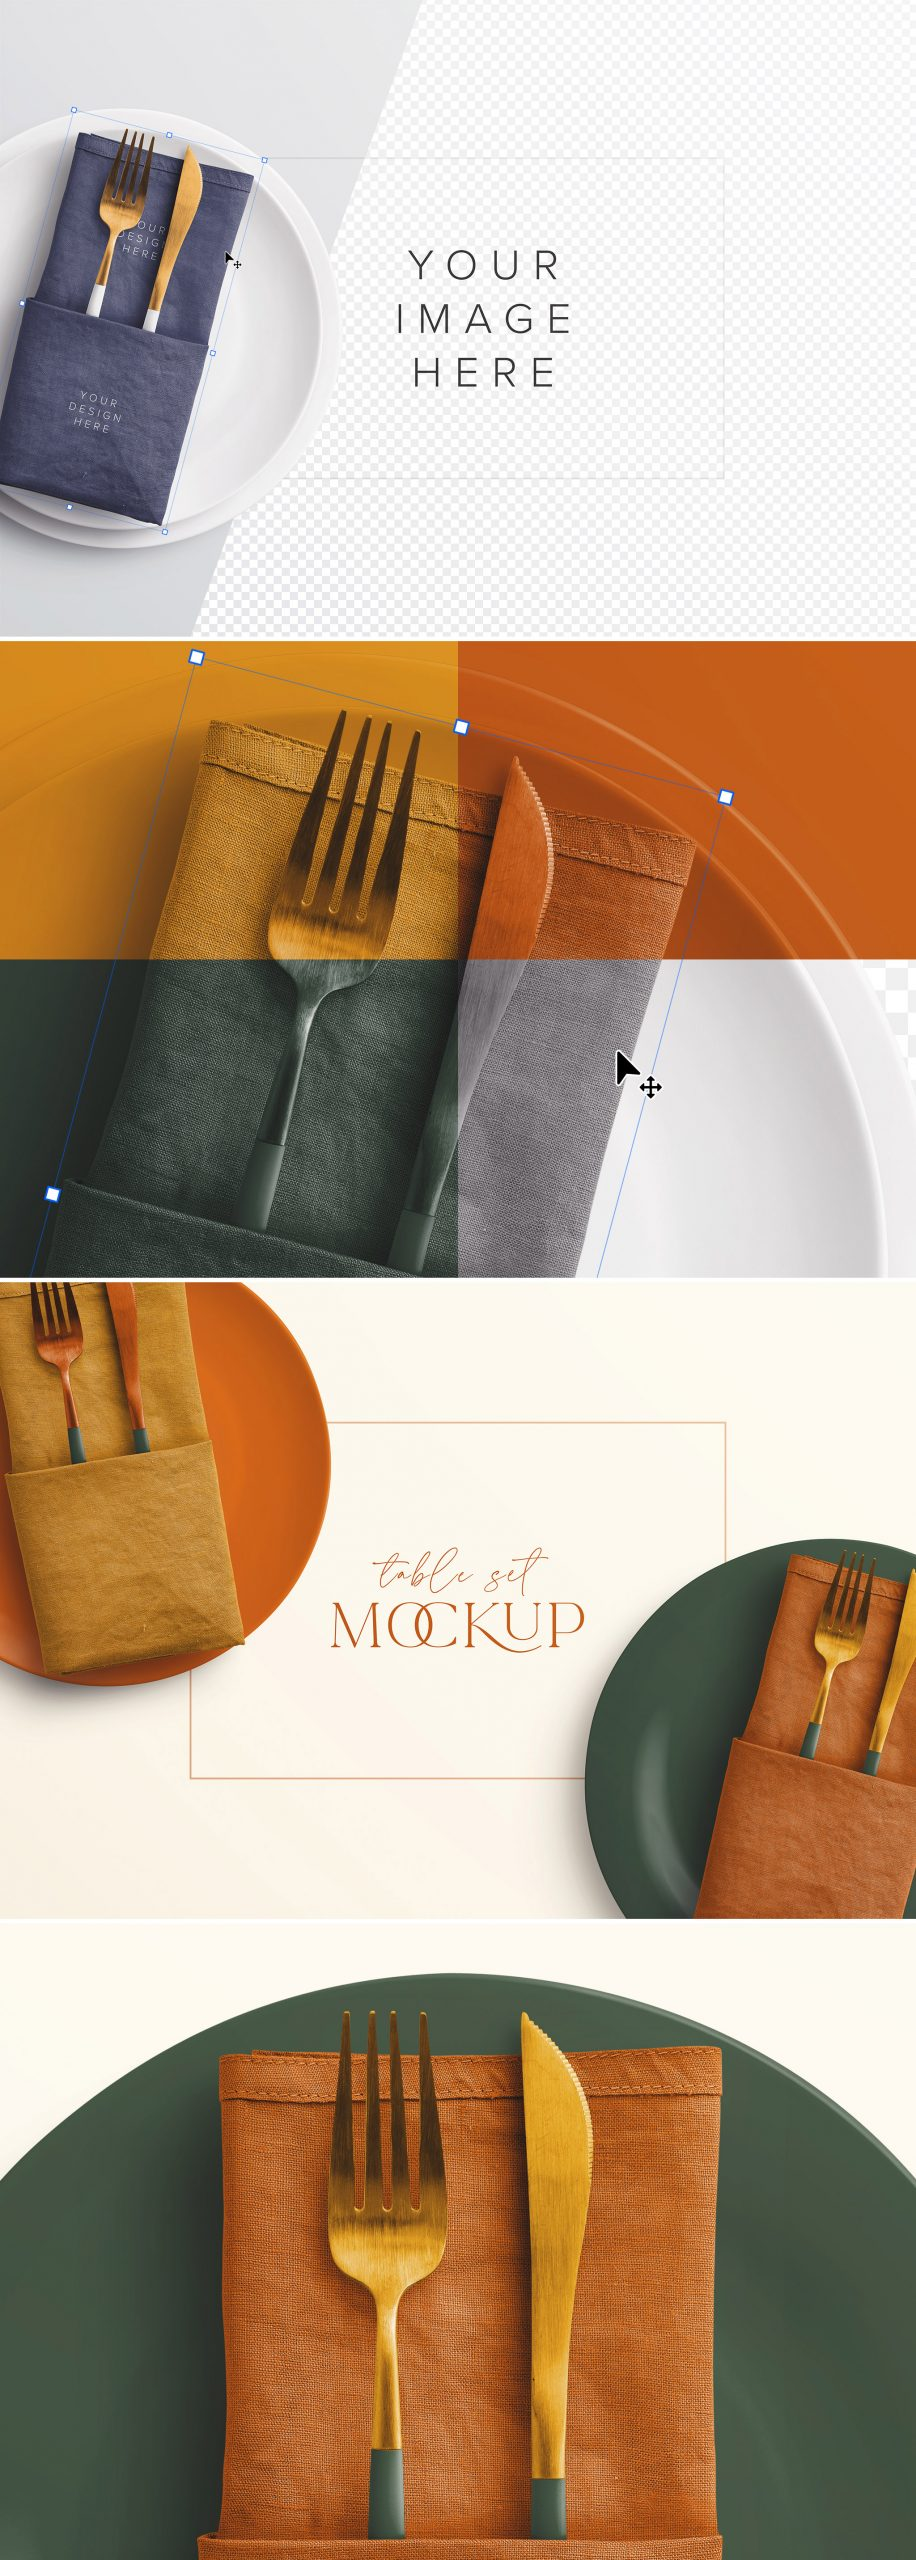 table set plate mockup and cutlery preview scaled